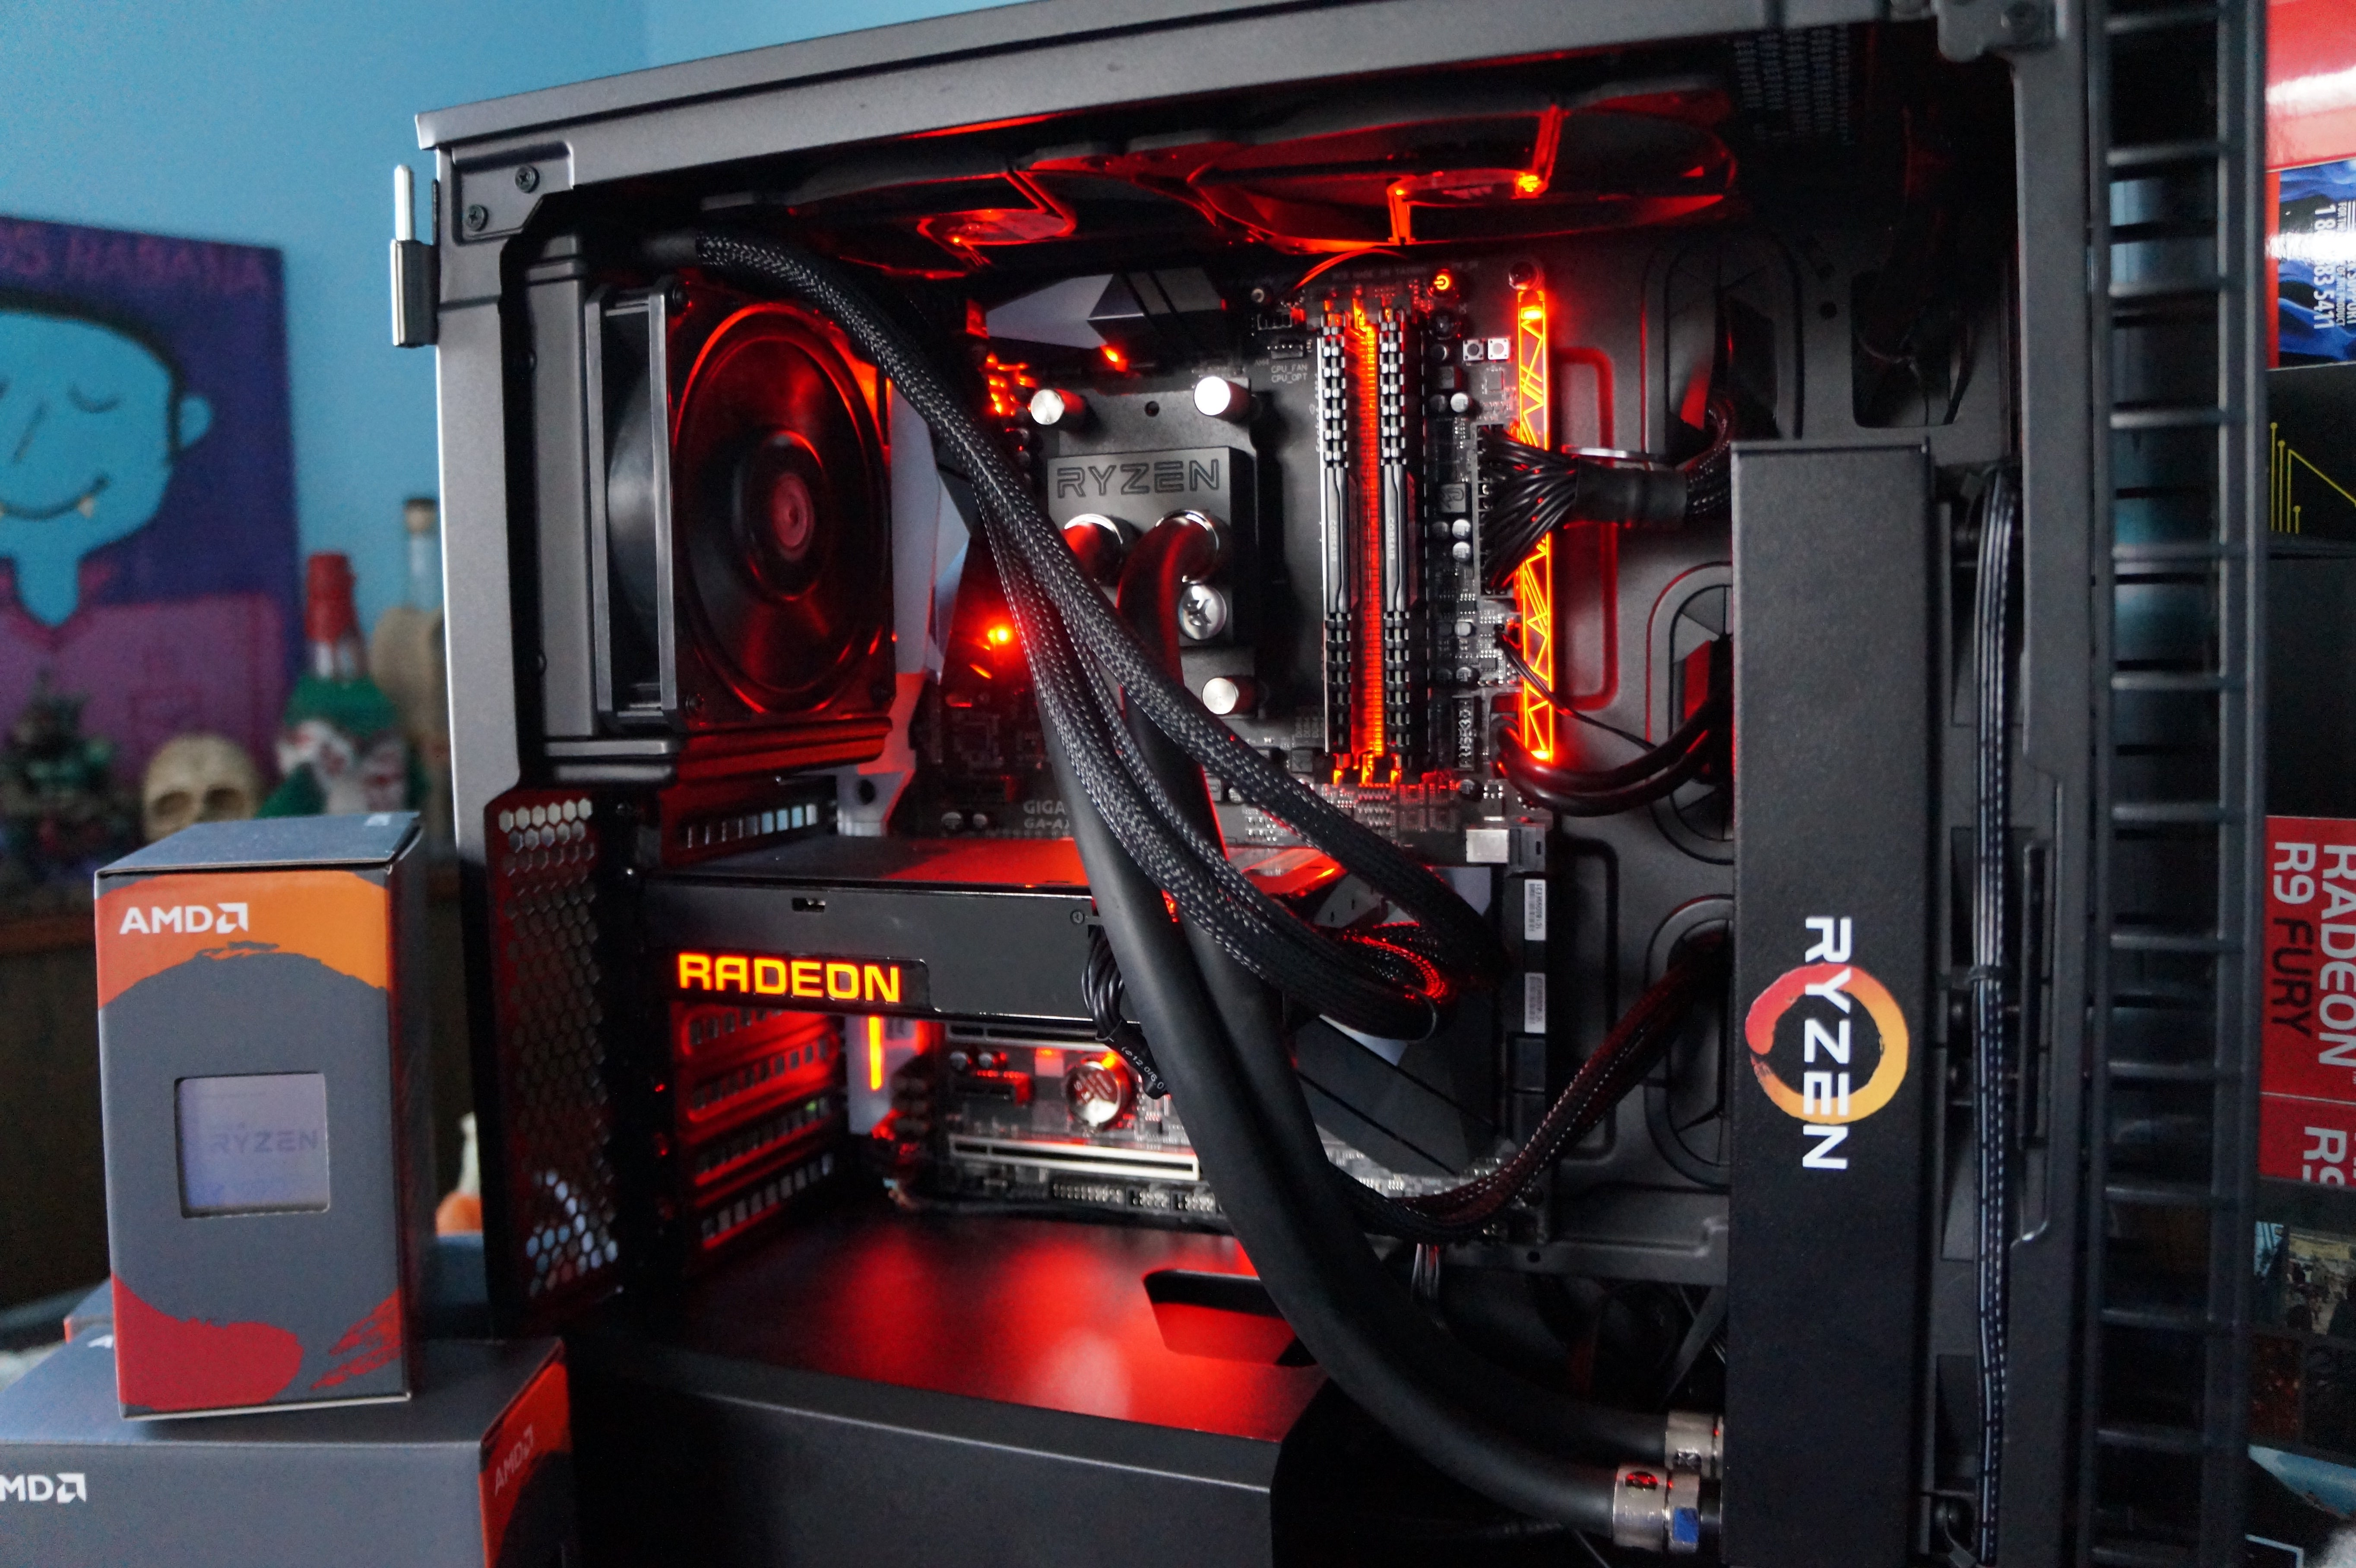 7 AMD Ryzen tips and tricks to maximize your PC's